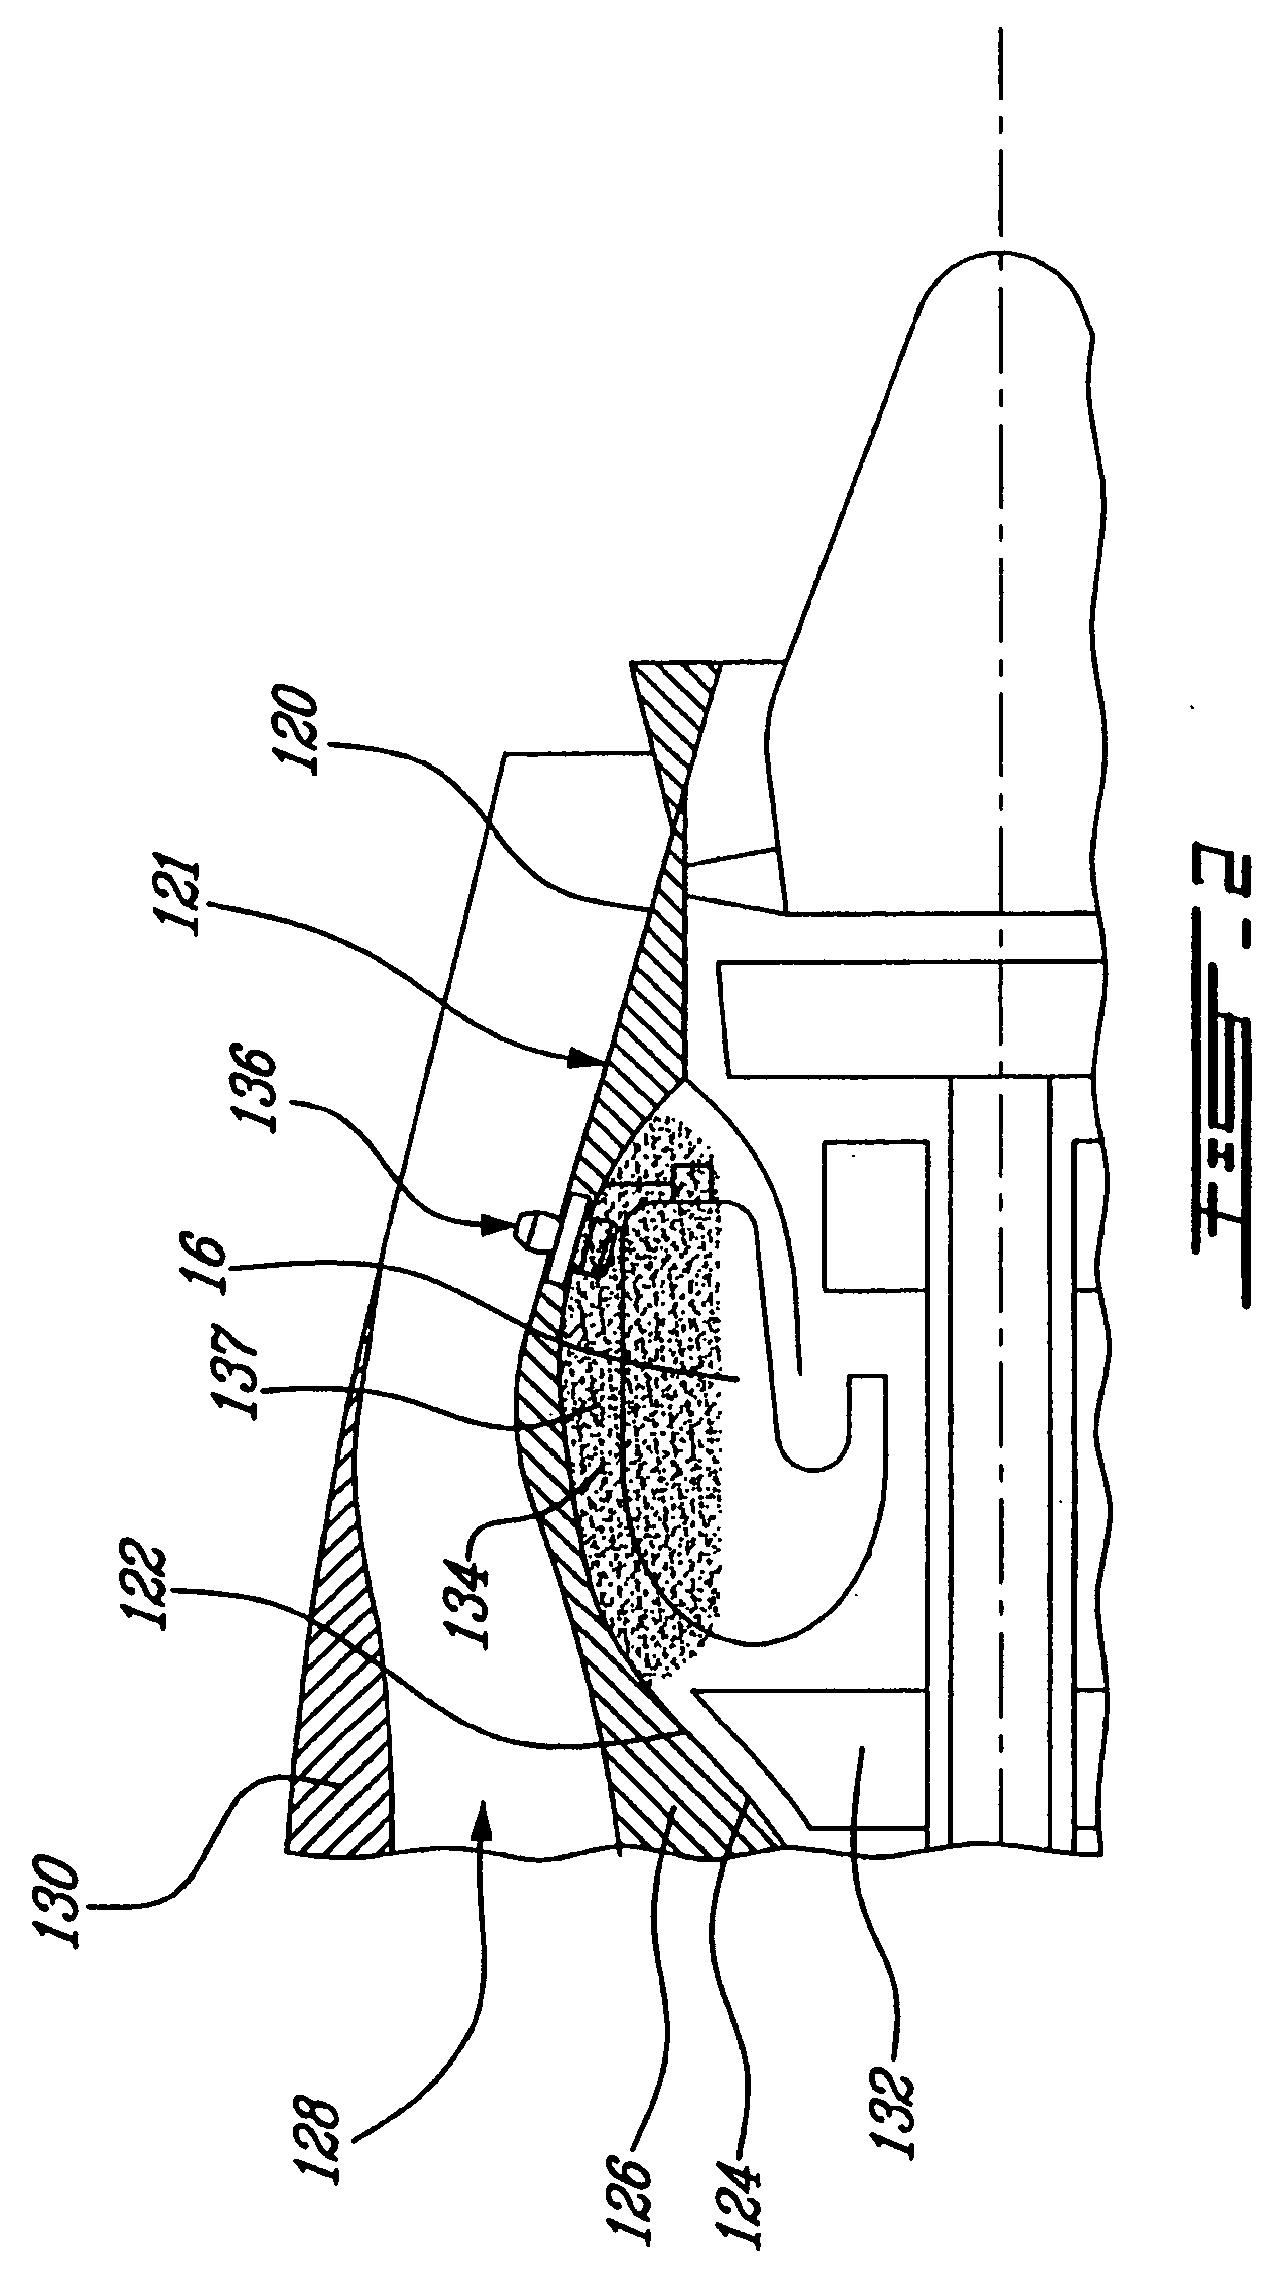 Patent EP A2 Evacuation of hot gases accumulated in an